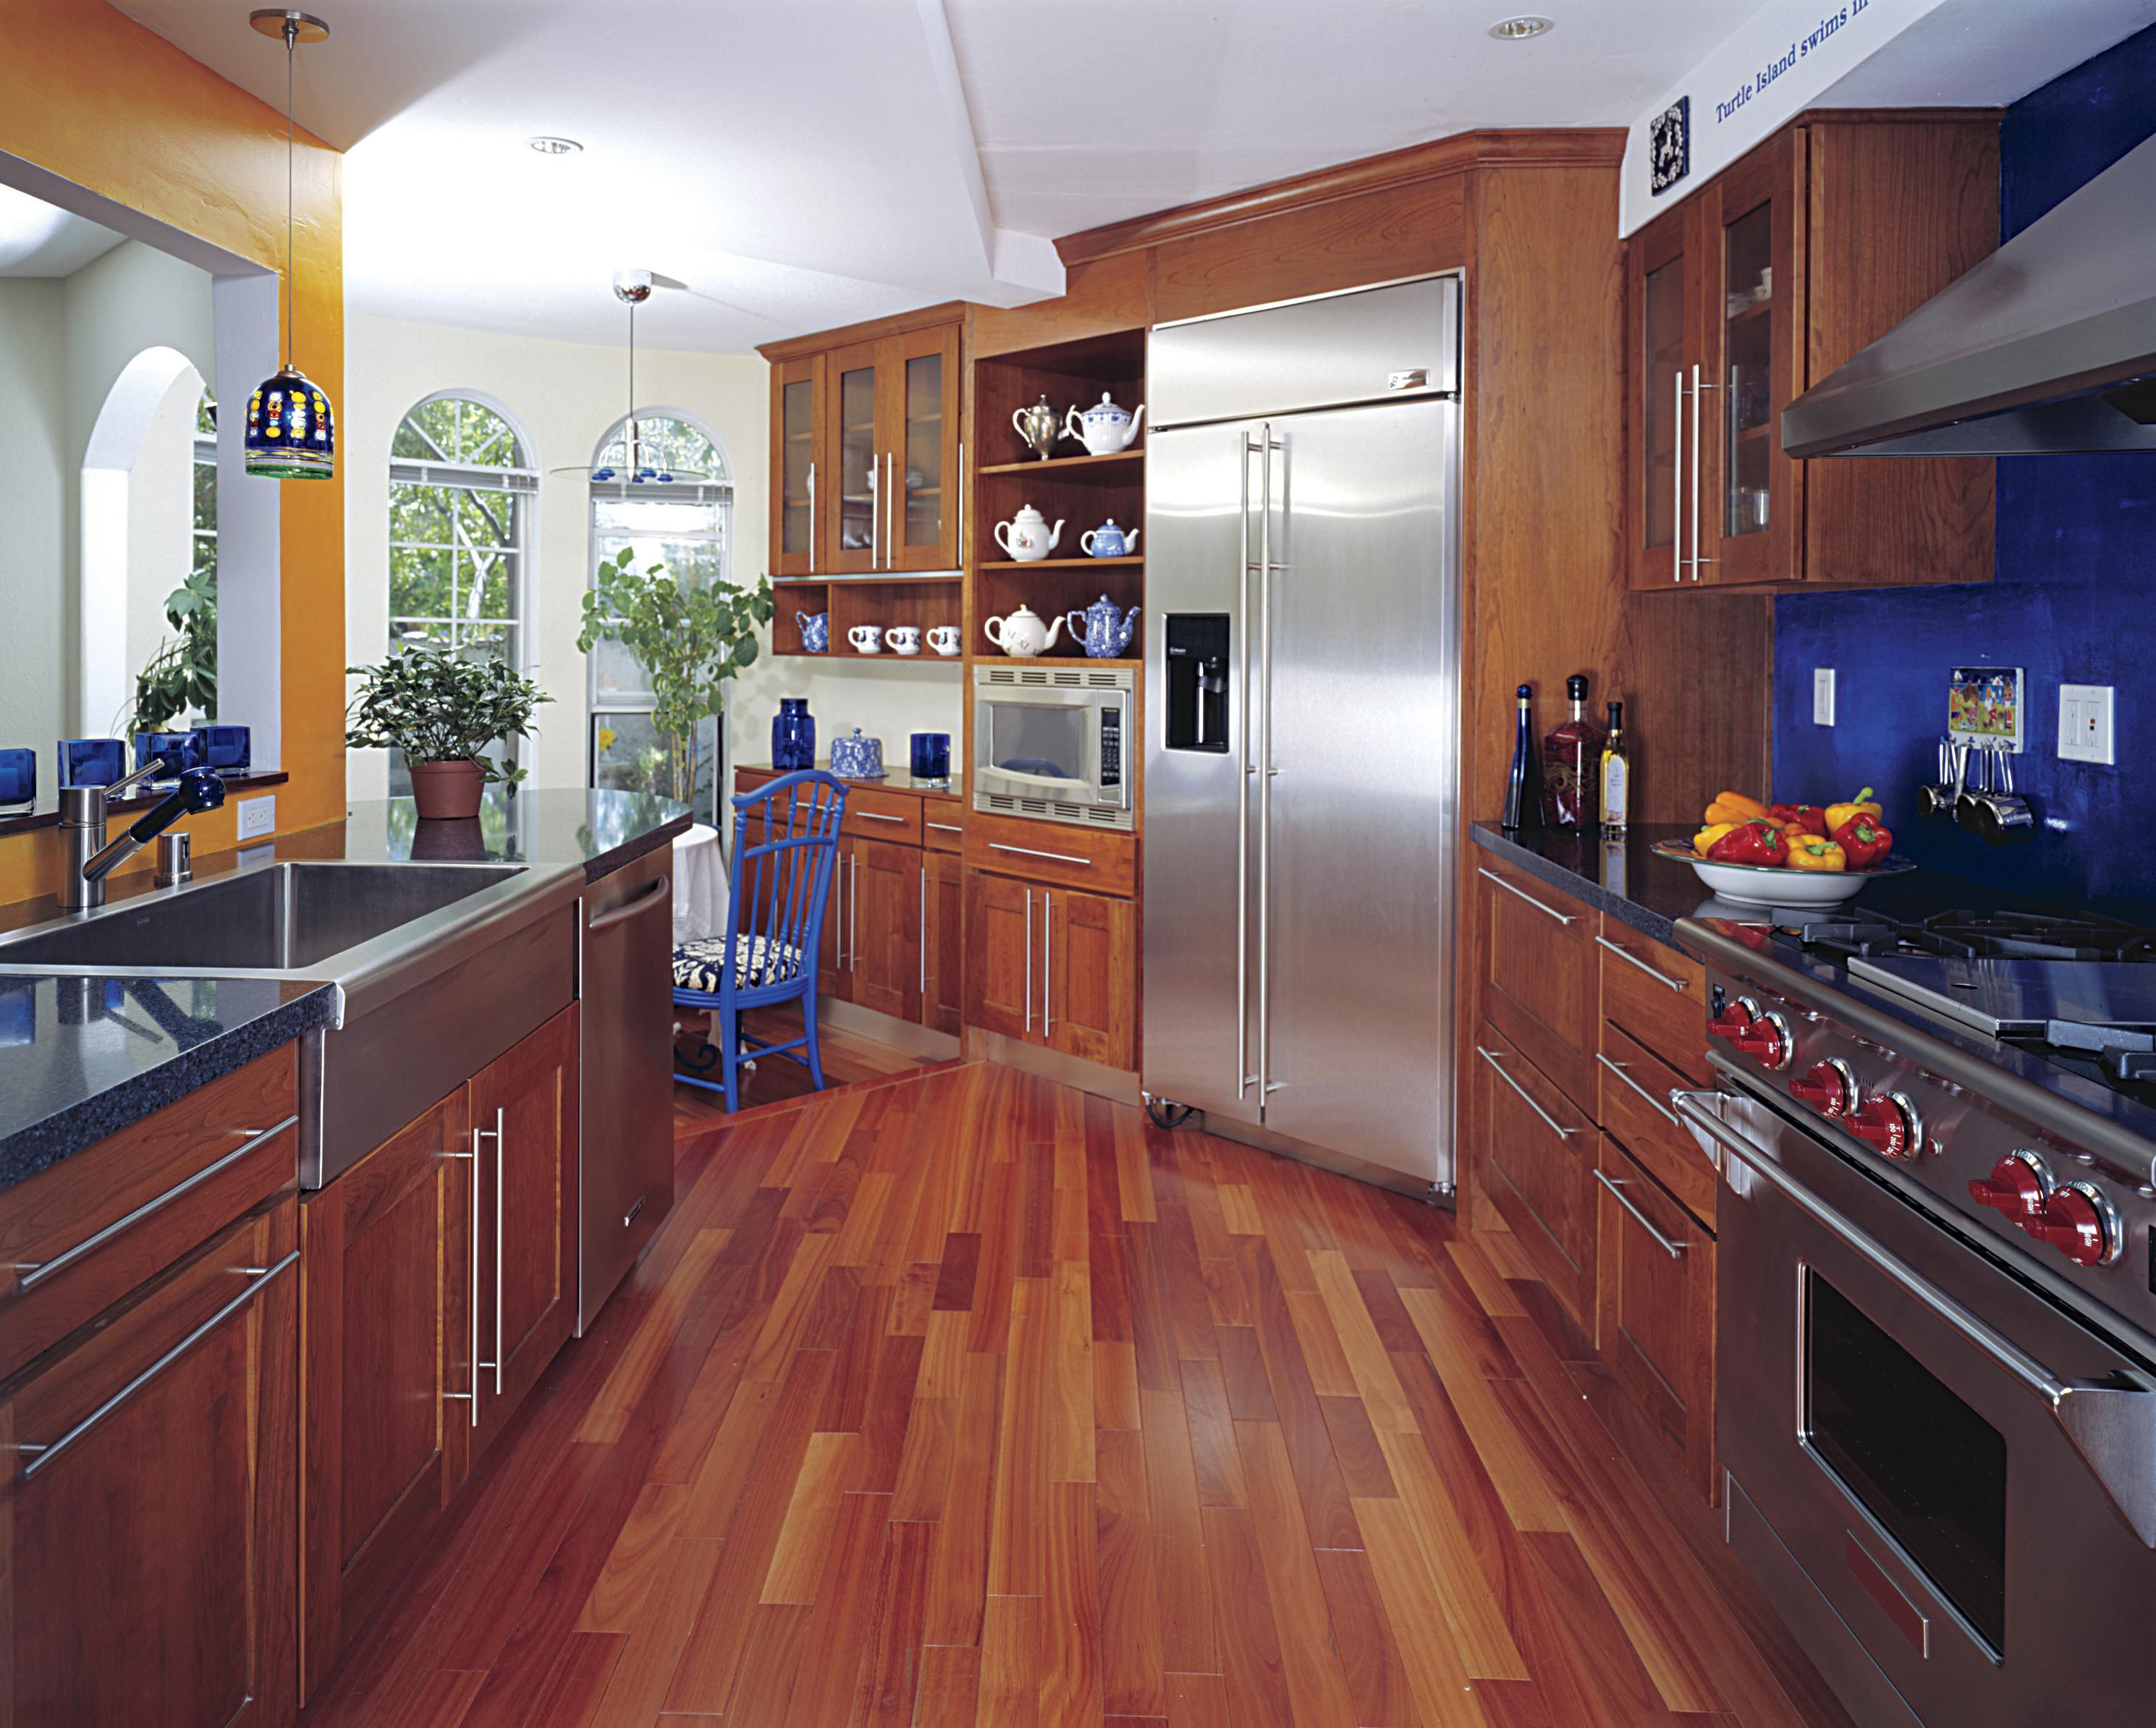 how to install hardwood flooring in multiple rooms of hardwood floor in a kitchen is this allowed with 186828472 56a49f3a5f9b58b7d0d7e142